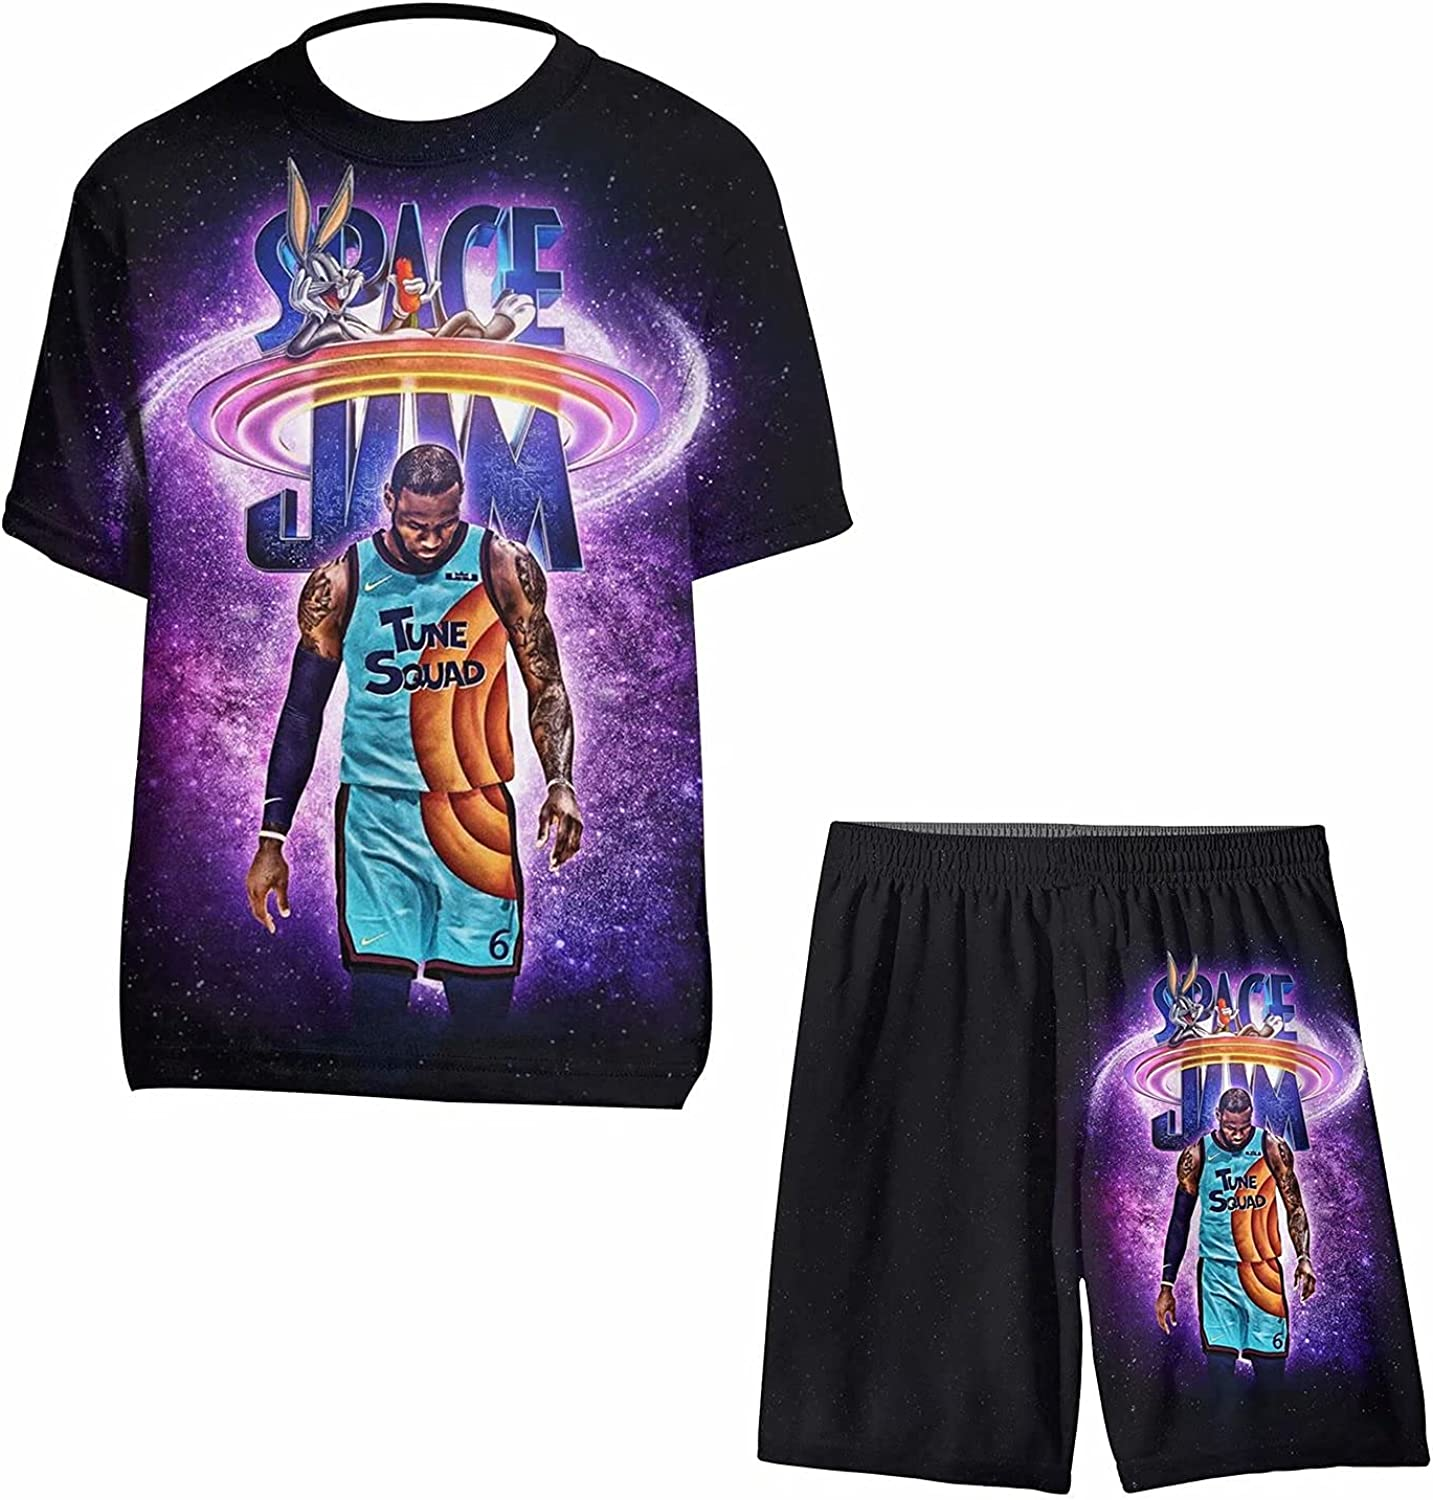 MINANTPE famous New Orleans Mall Shirt and Shorts 2 Outfit Athletic Clothes Set Piece